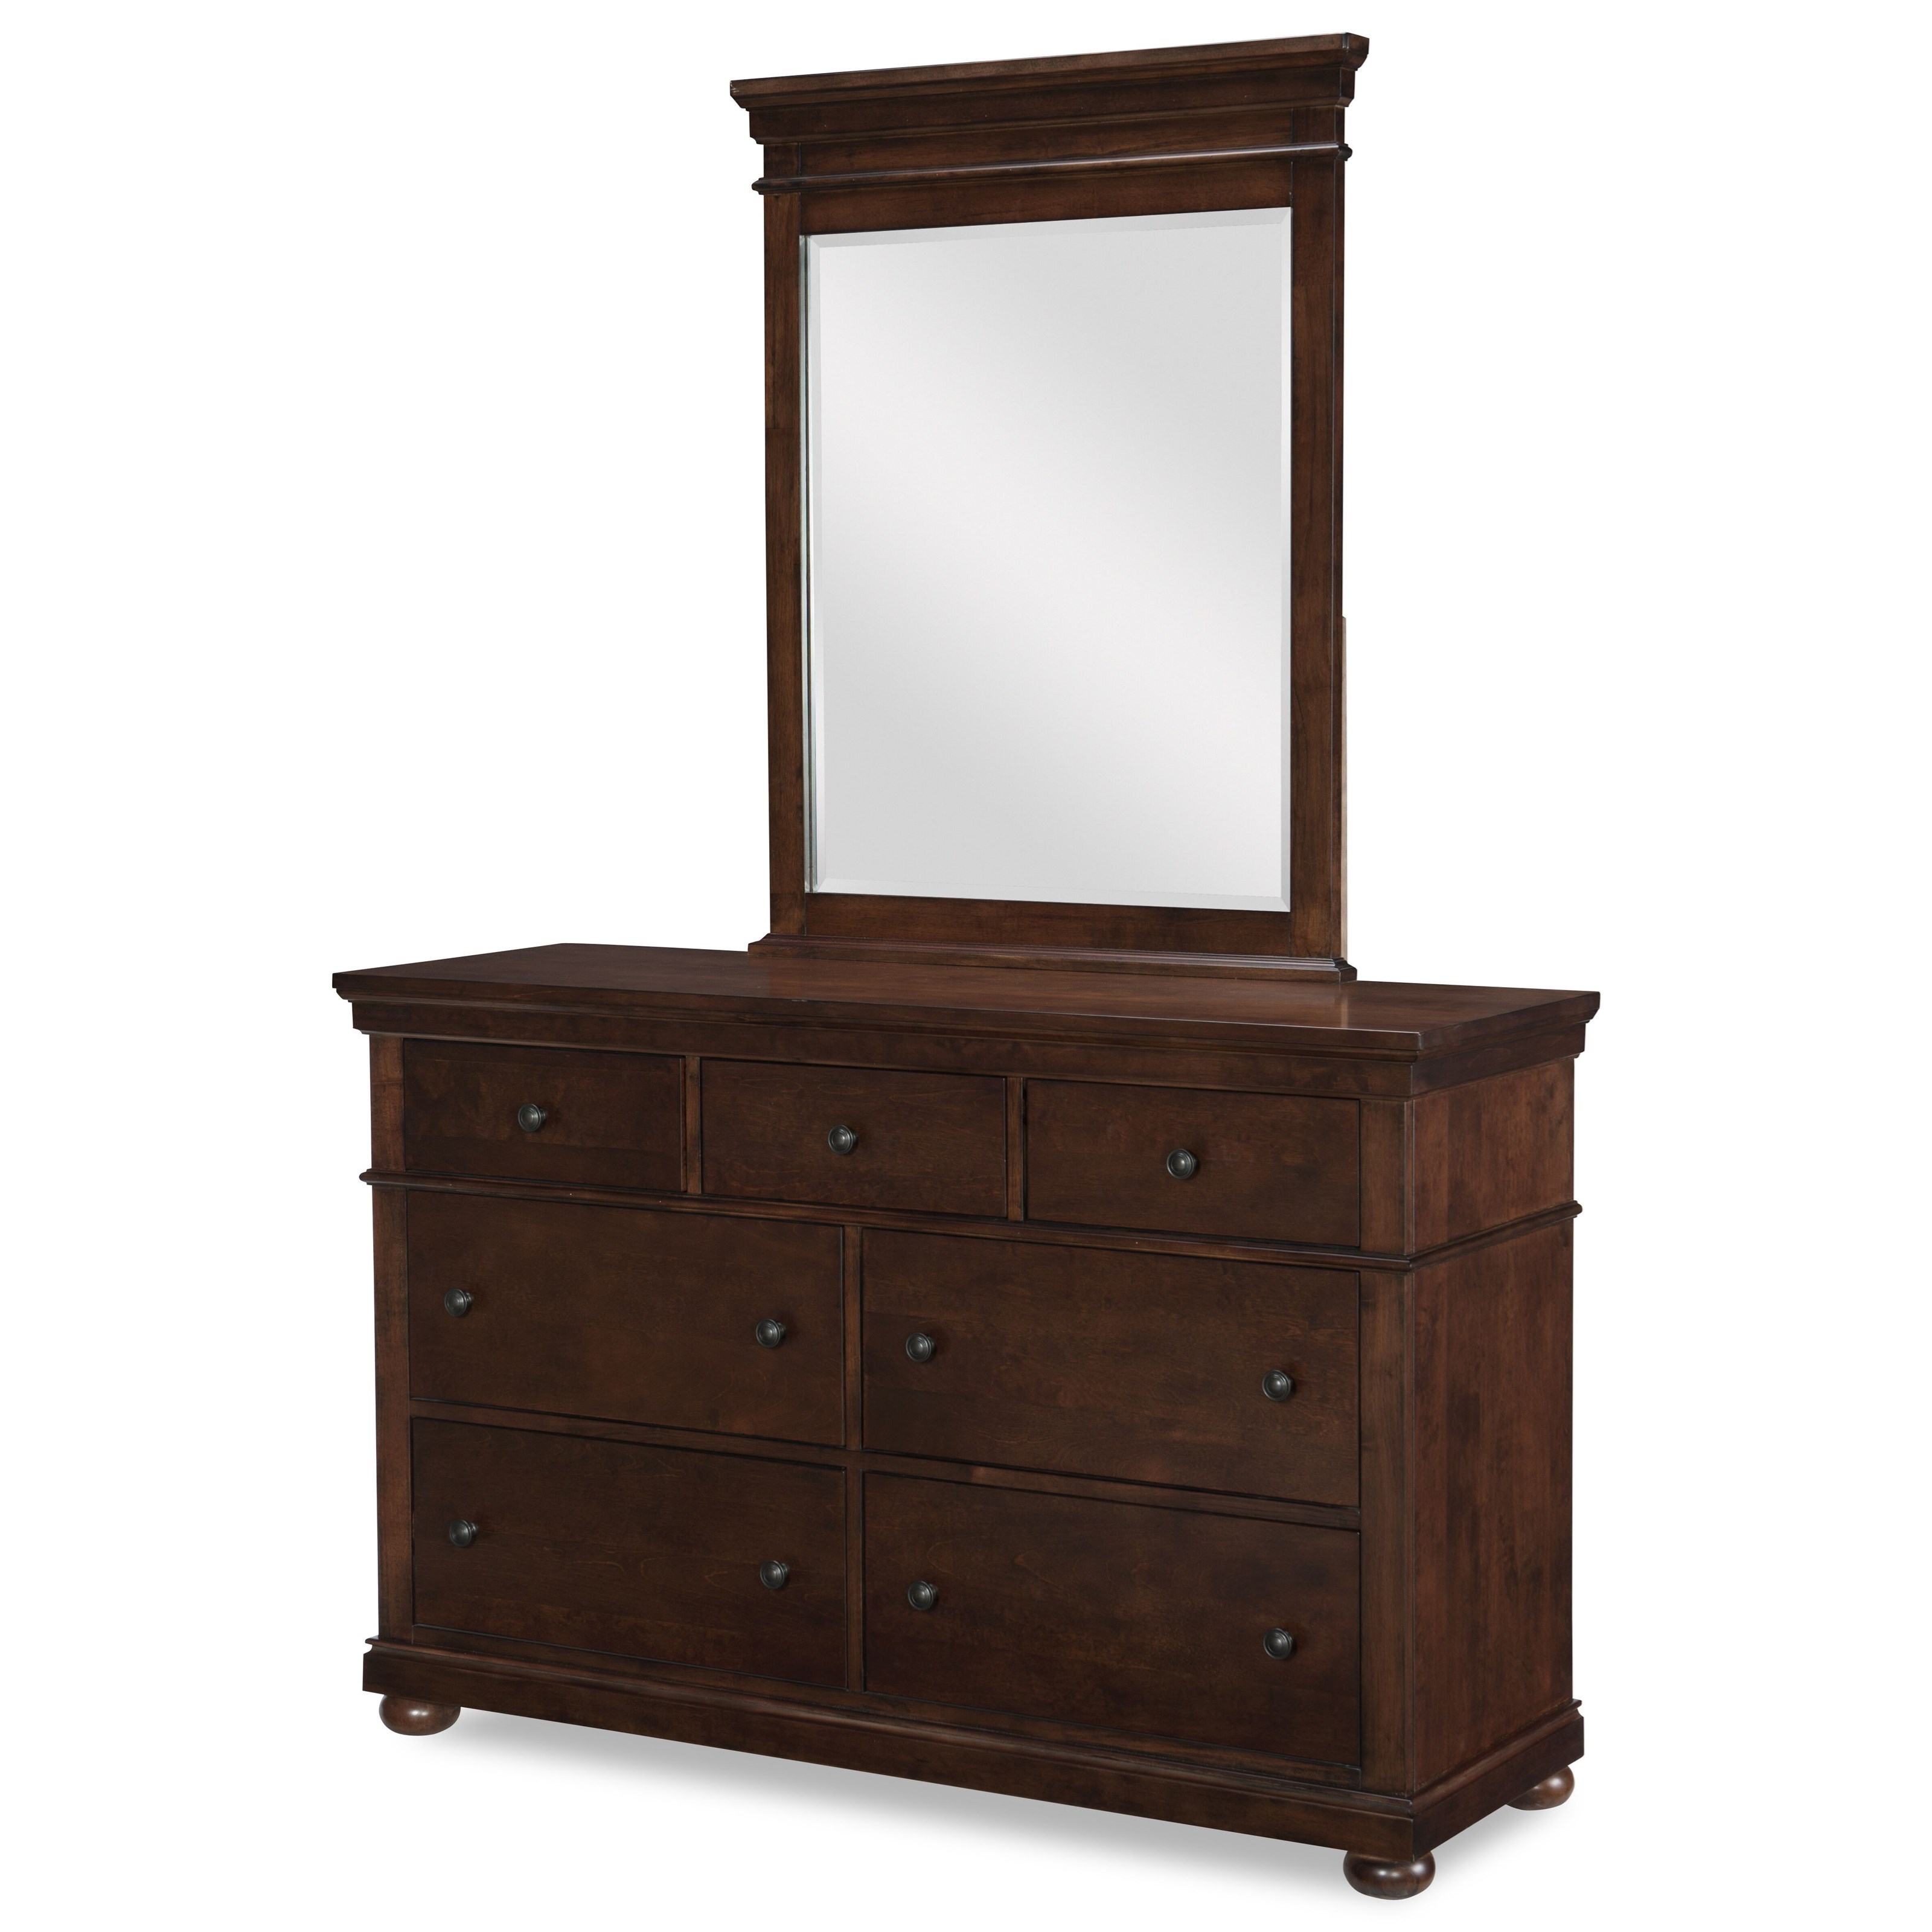 Canterbury Dresser and Mirror Set by Legacy Classic Kids at Crowley Furniture & Mattress